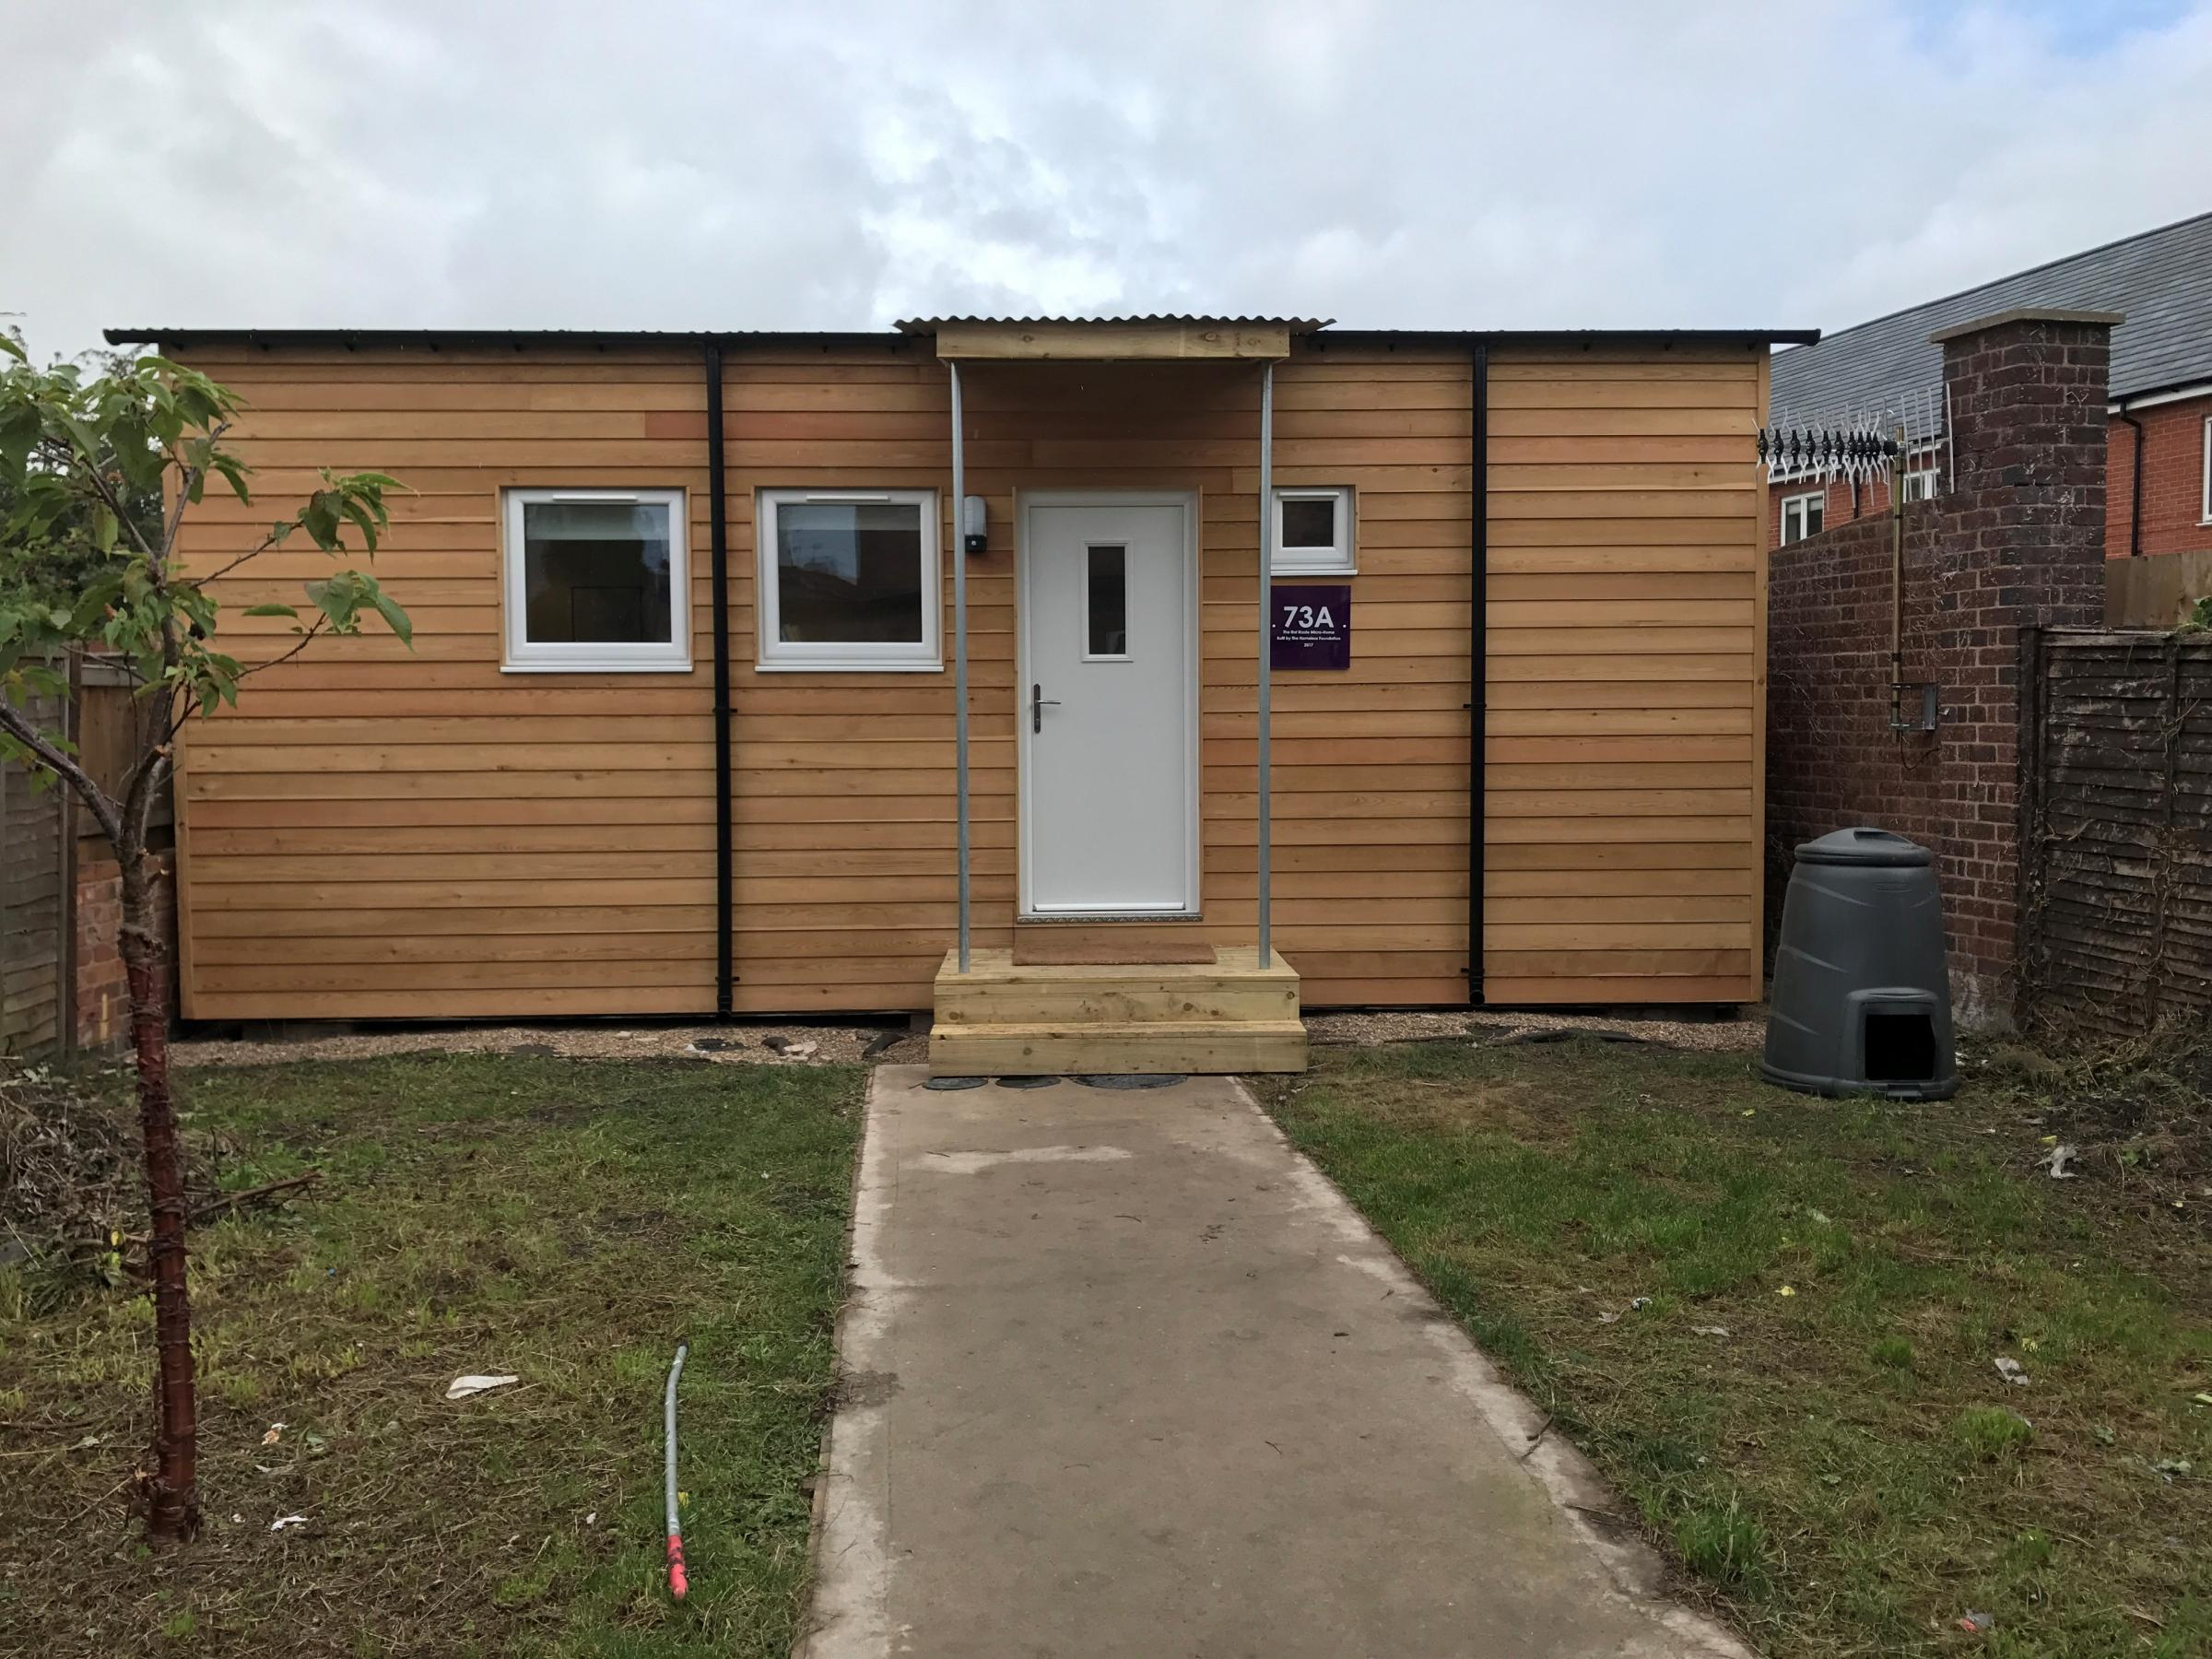 Innovative Micro-Home For The Homeless Launched By Redditch